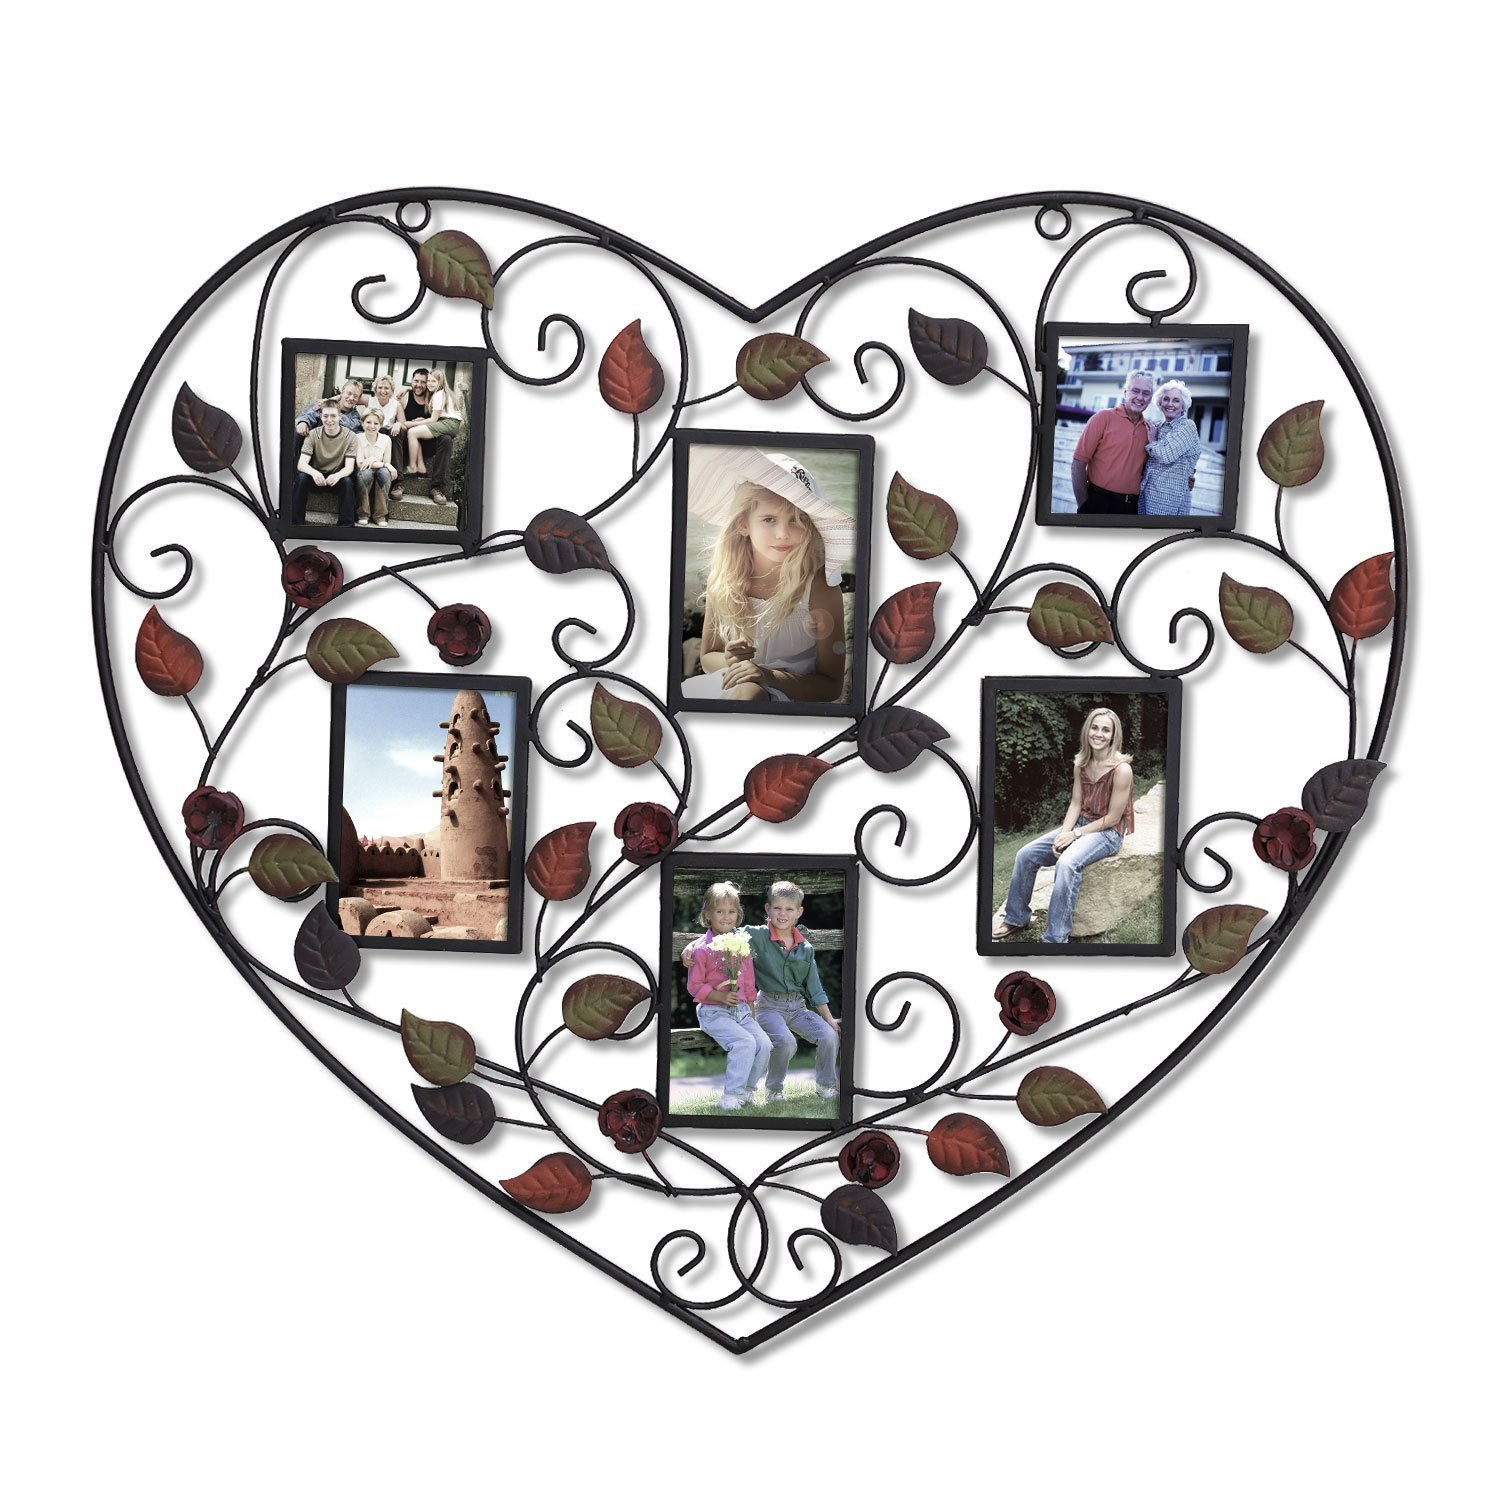 Buy Adeco Decorative Black Iron Heart Shape Picture Frame Collage